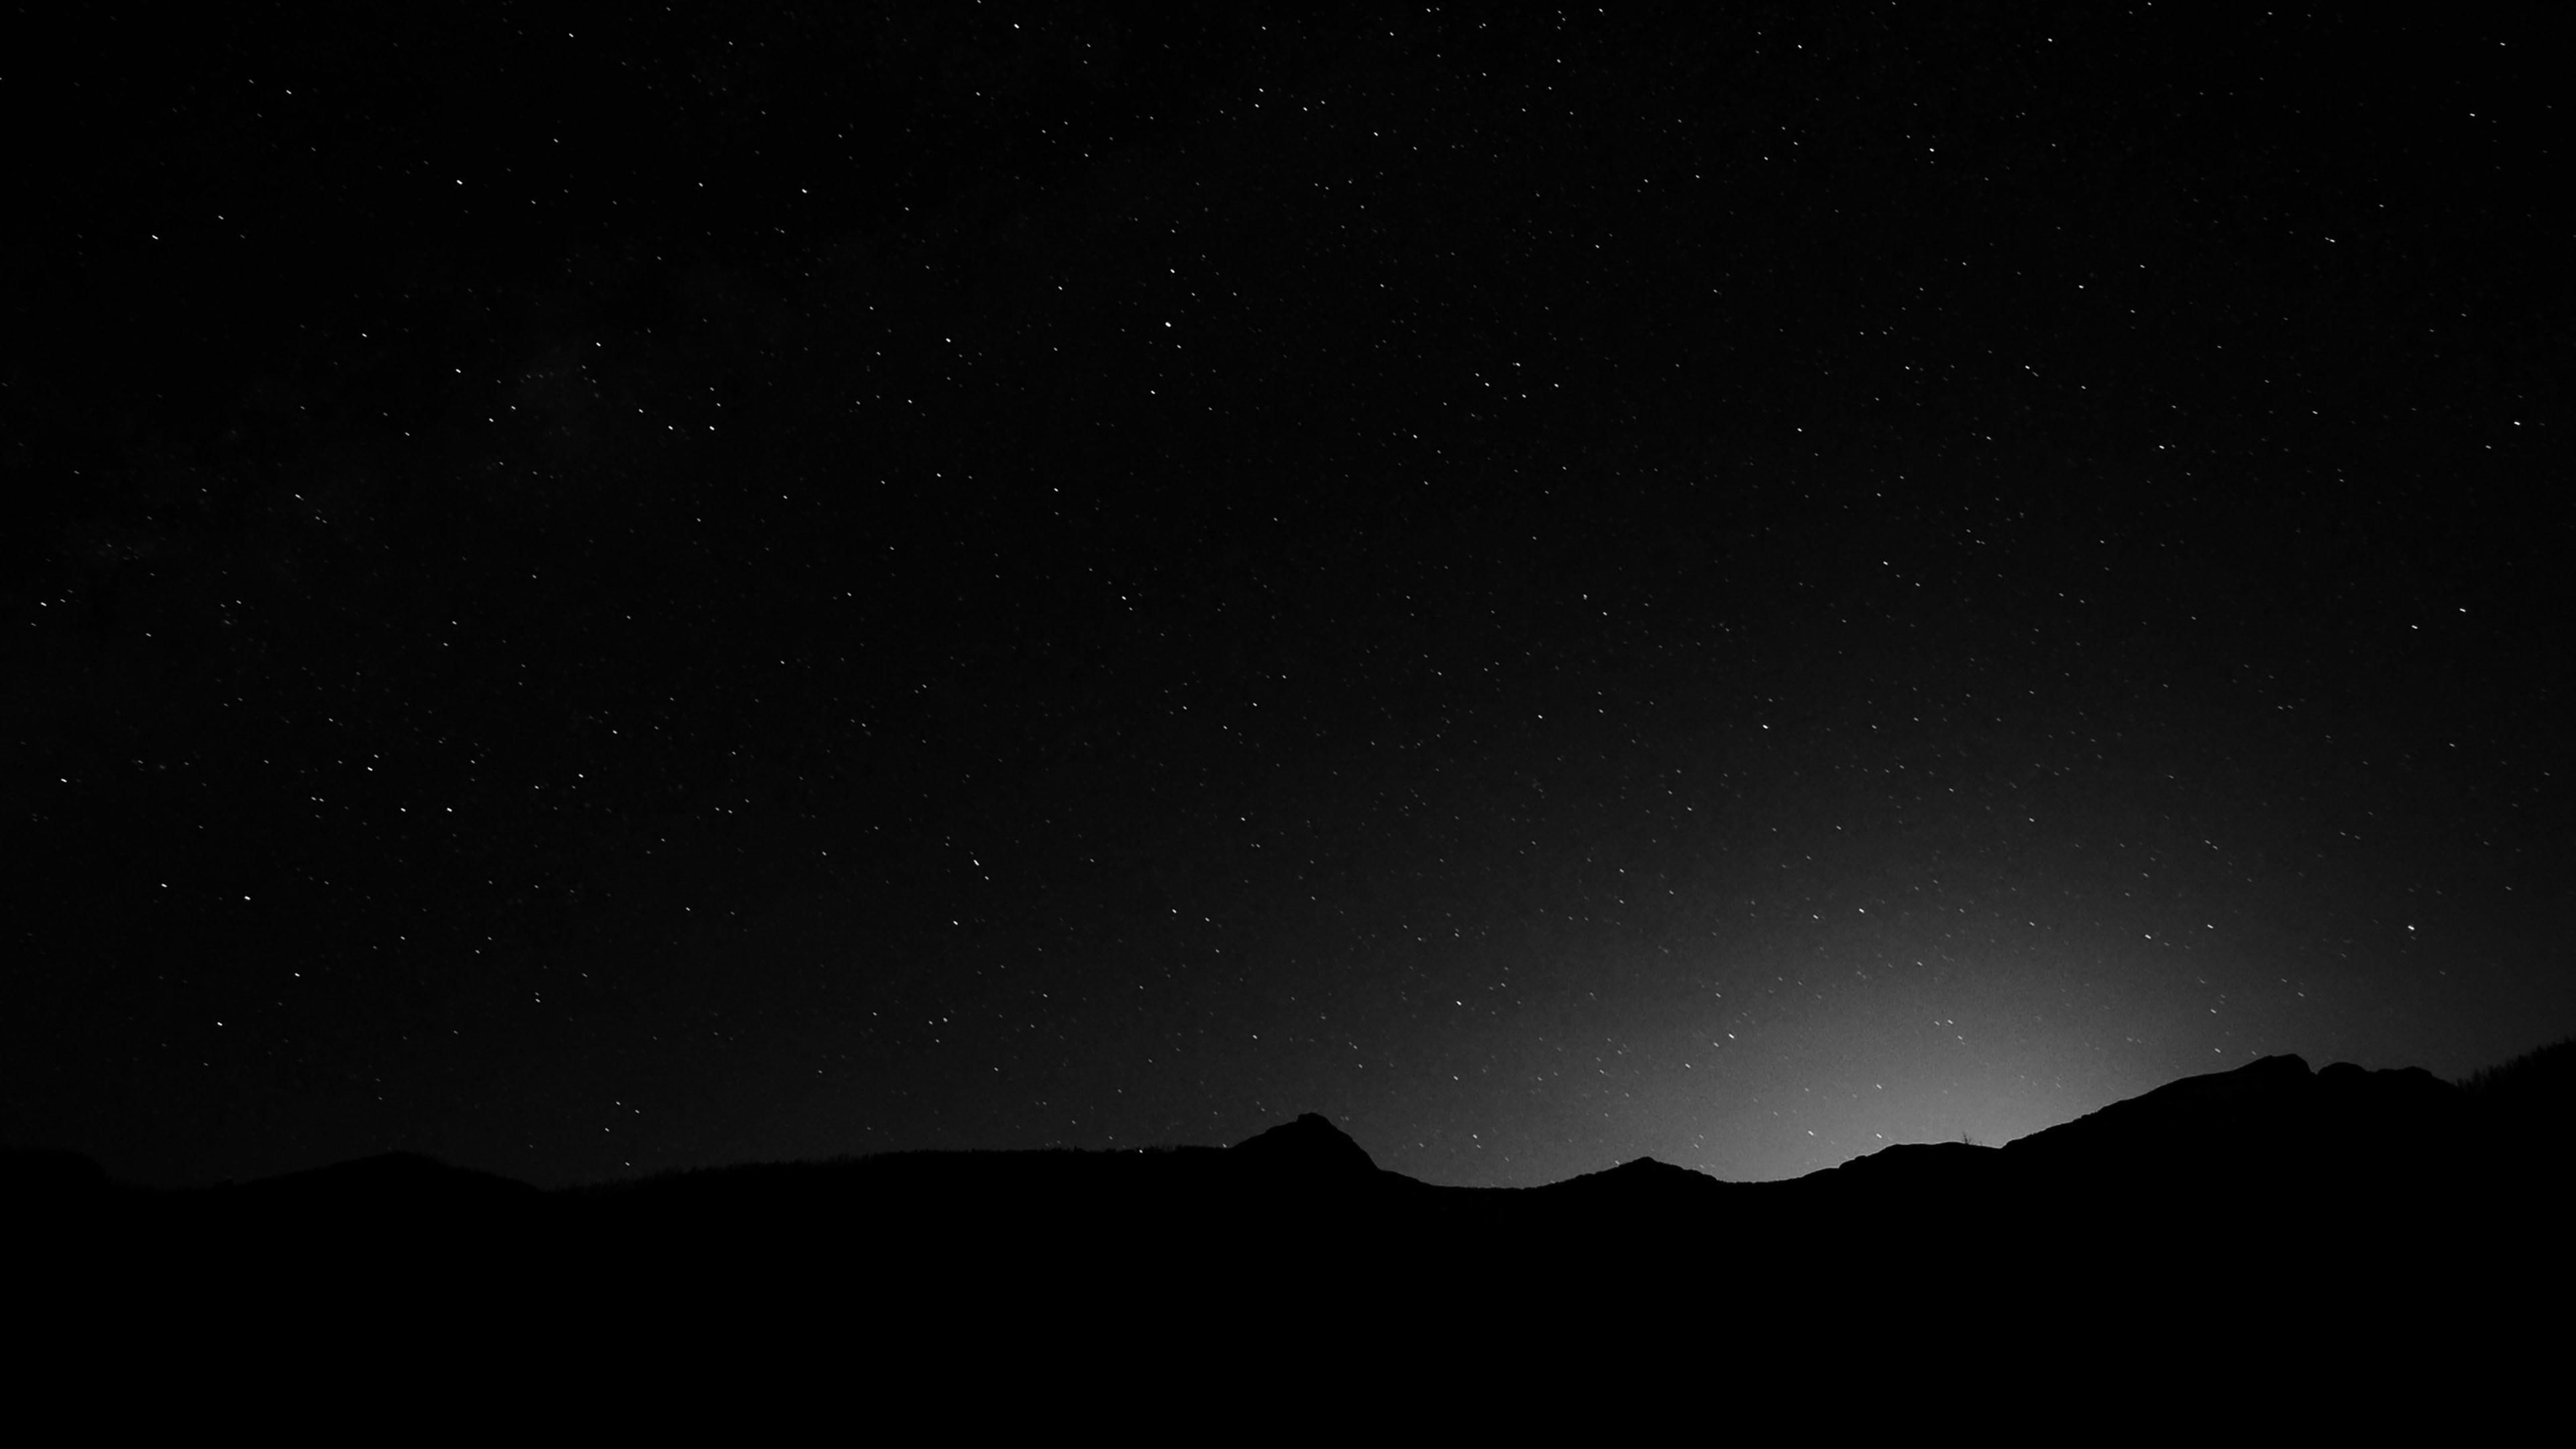 Black Night Starry Night Monochrome Starry Stars Night Sky Sky Skies Black Amp White 4 In 2020 Night Sky Wallpaper Desktop Wallpaper Black Mountain Wallpaper